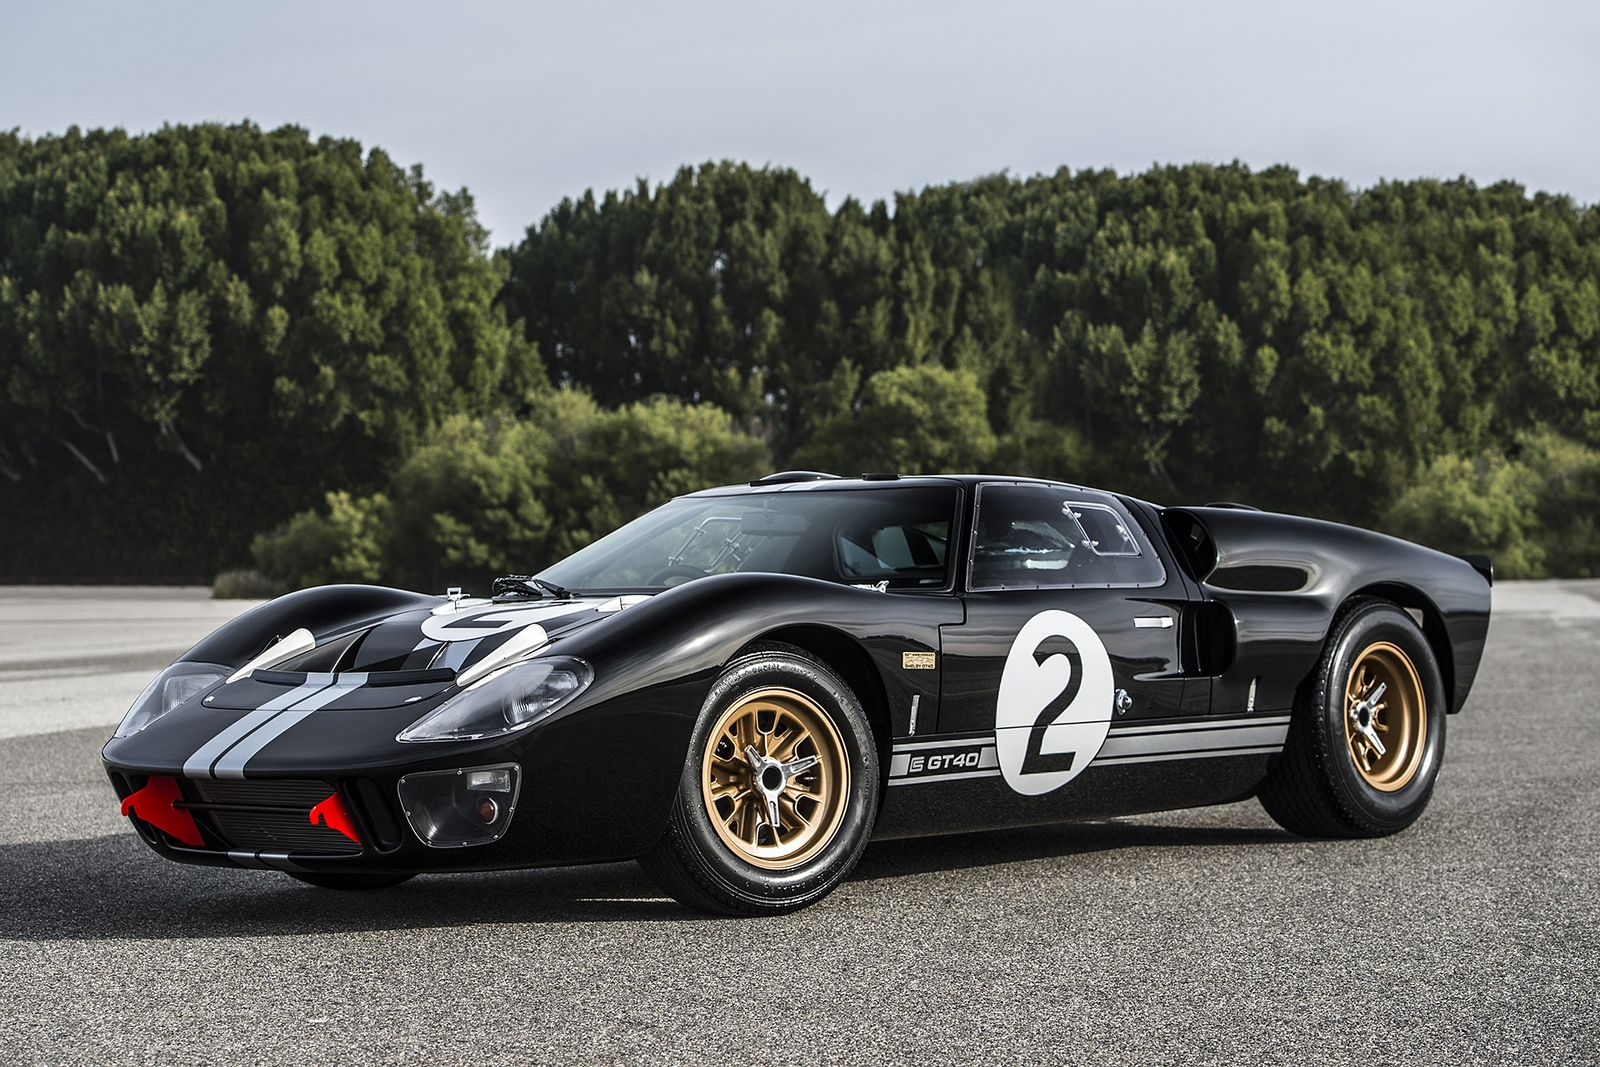 Gt40 50th Anniversary By Shelby And Superformance Is One Special Replica Carscoops Com